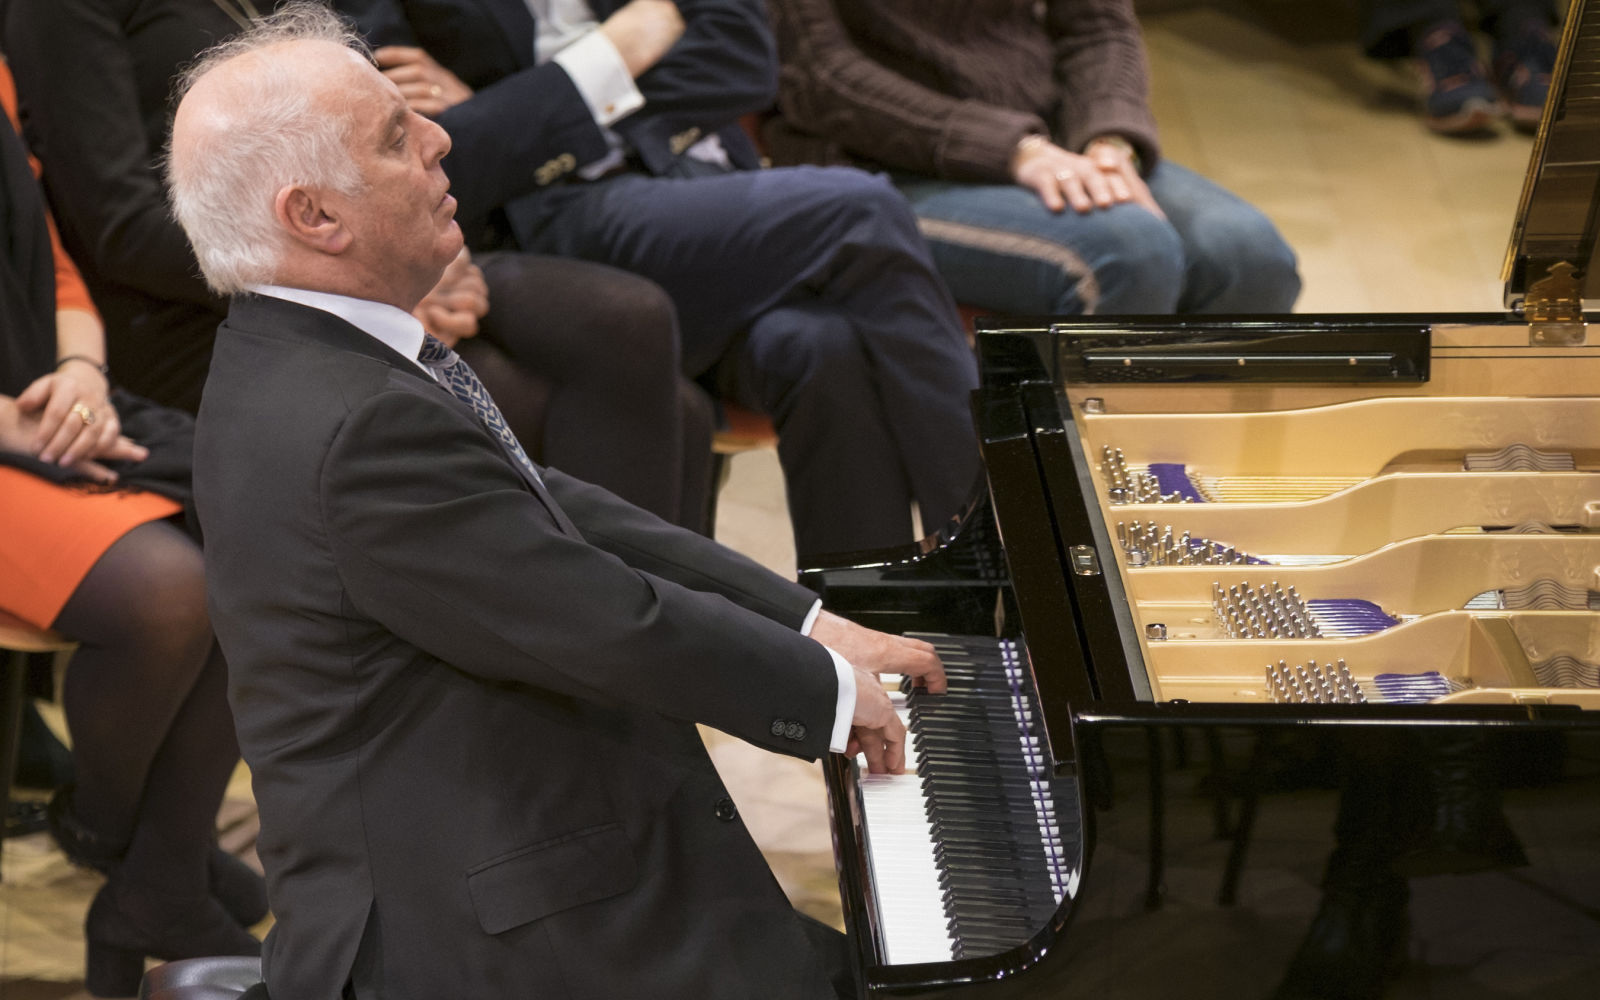 15 Best Reasons to start learning piano - Daniel Barenboim